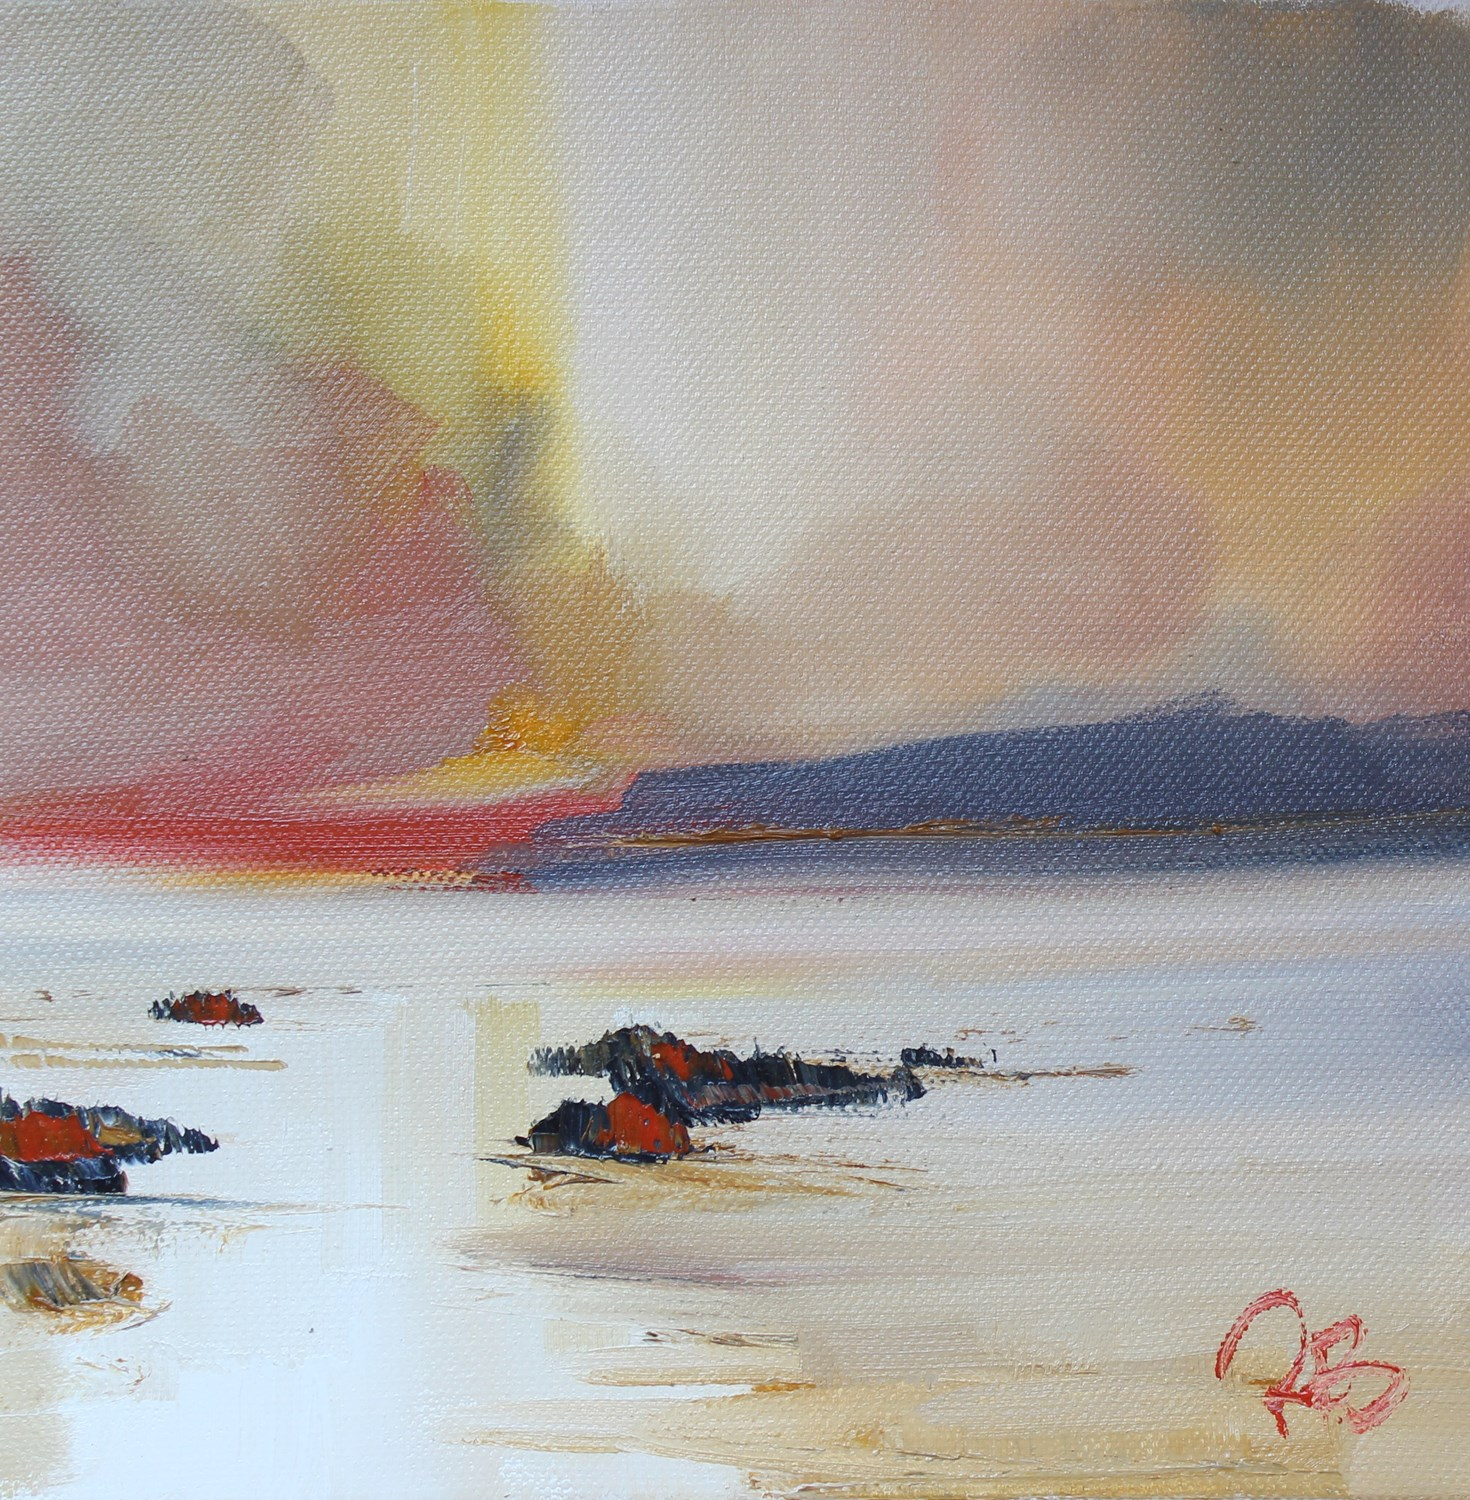 'Solitude at Sunset' by artist Rosanne Barr